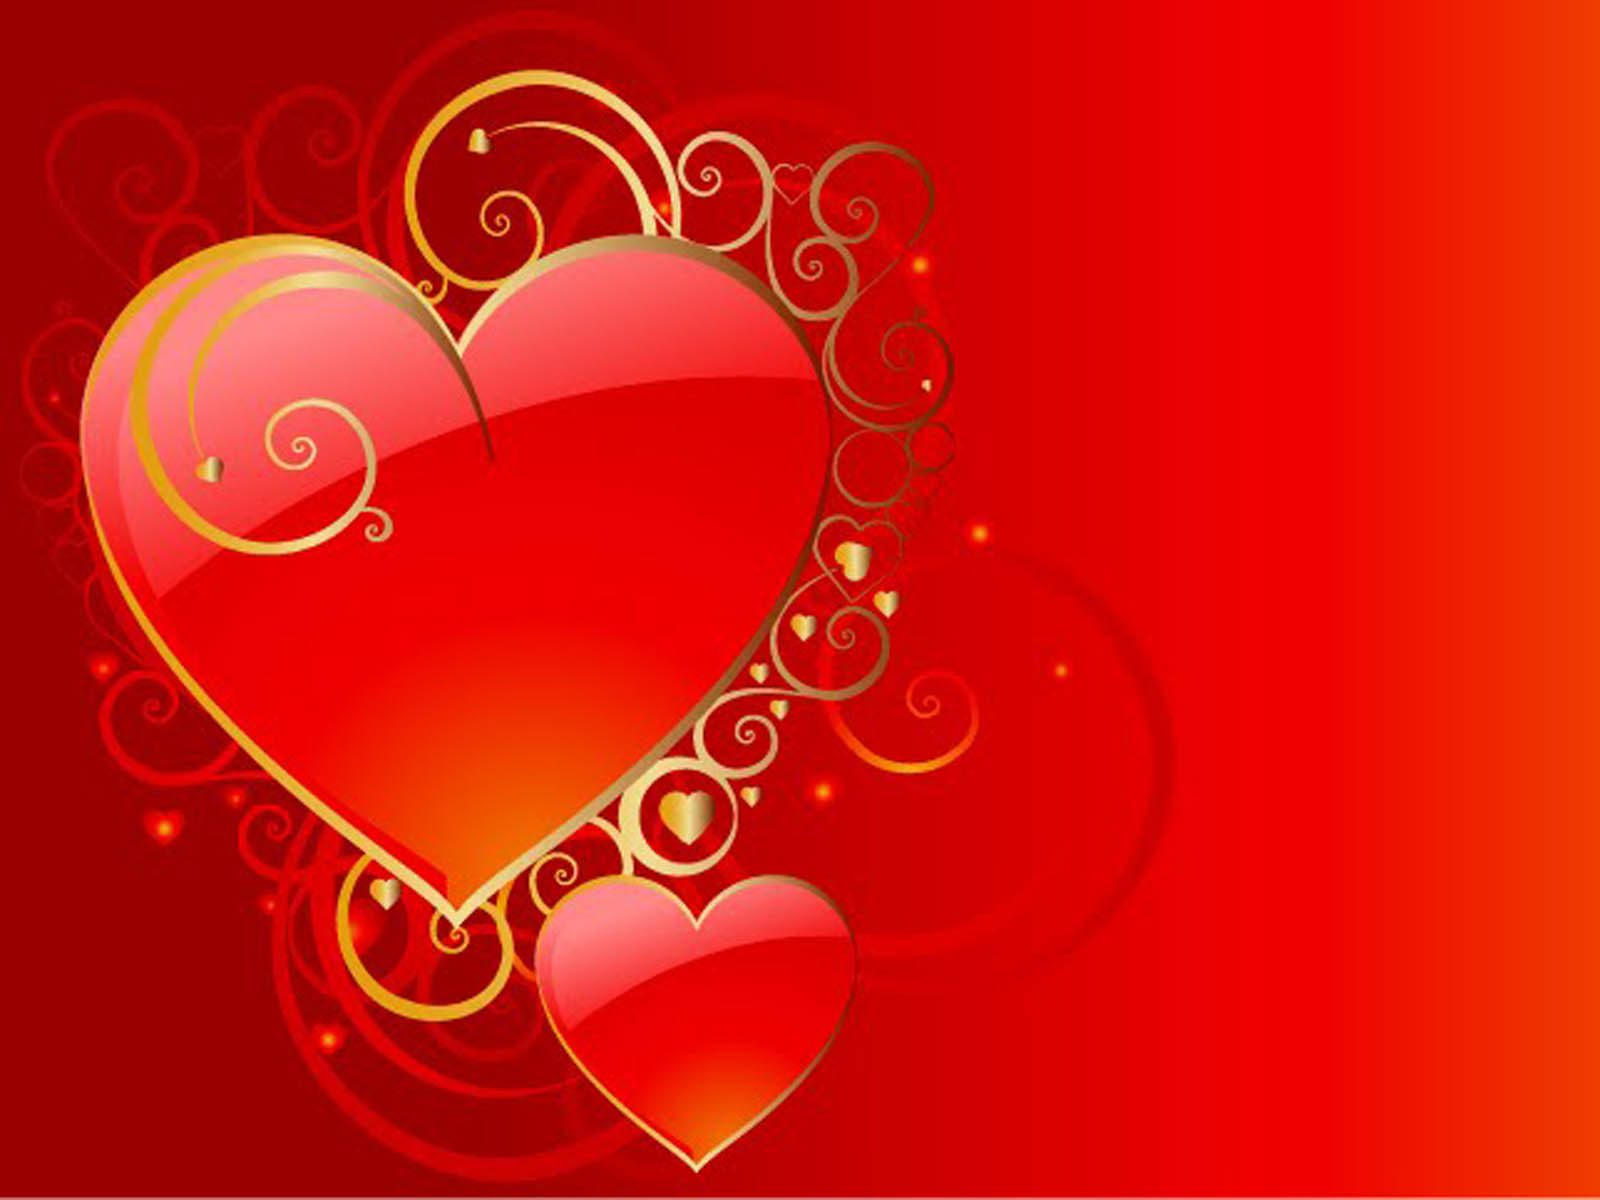 Wallpaper I Love You Heart : wallpapers: Love Heart Wallpapers